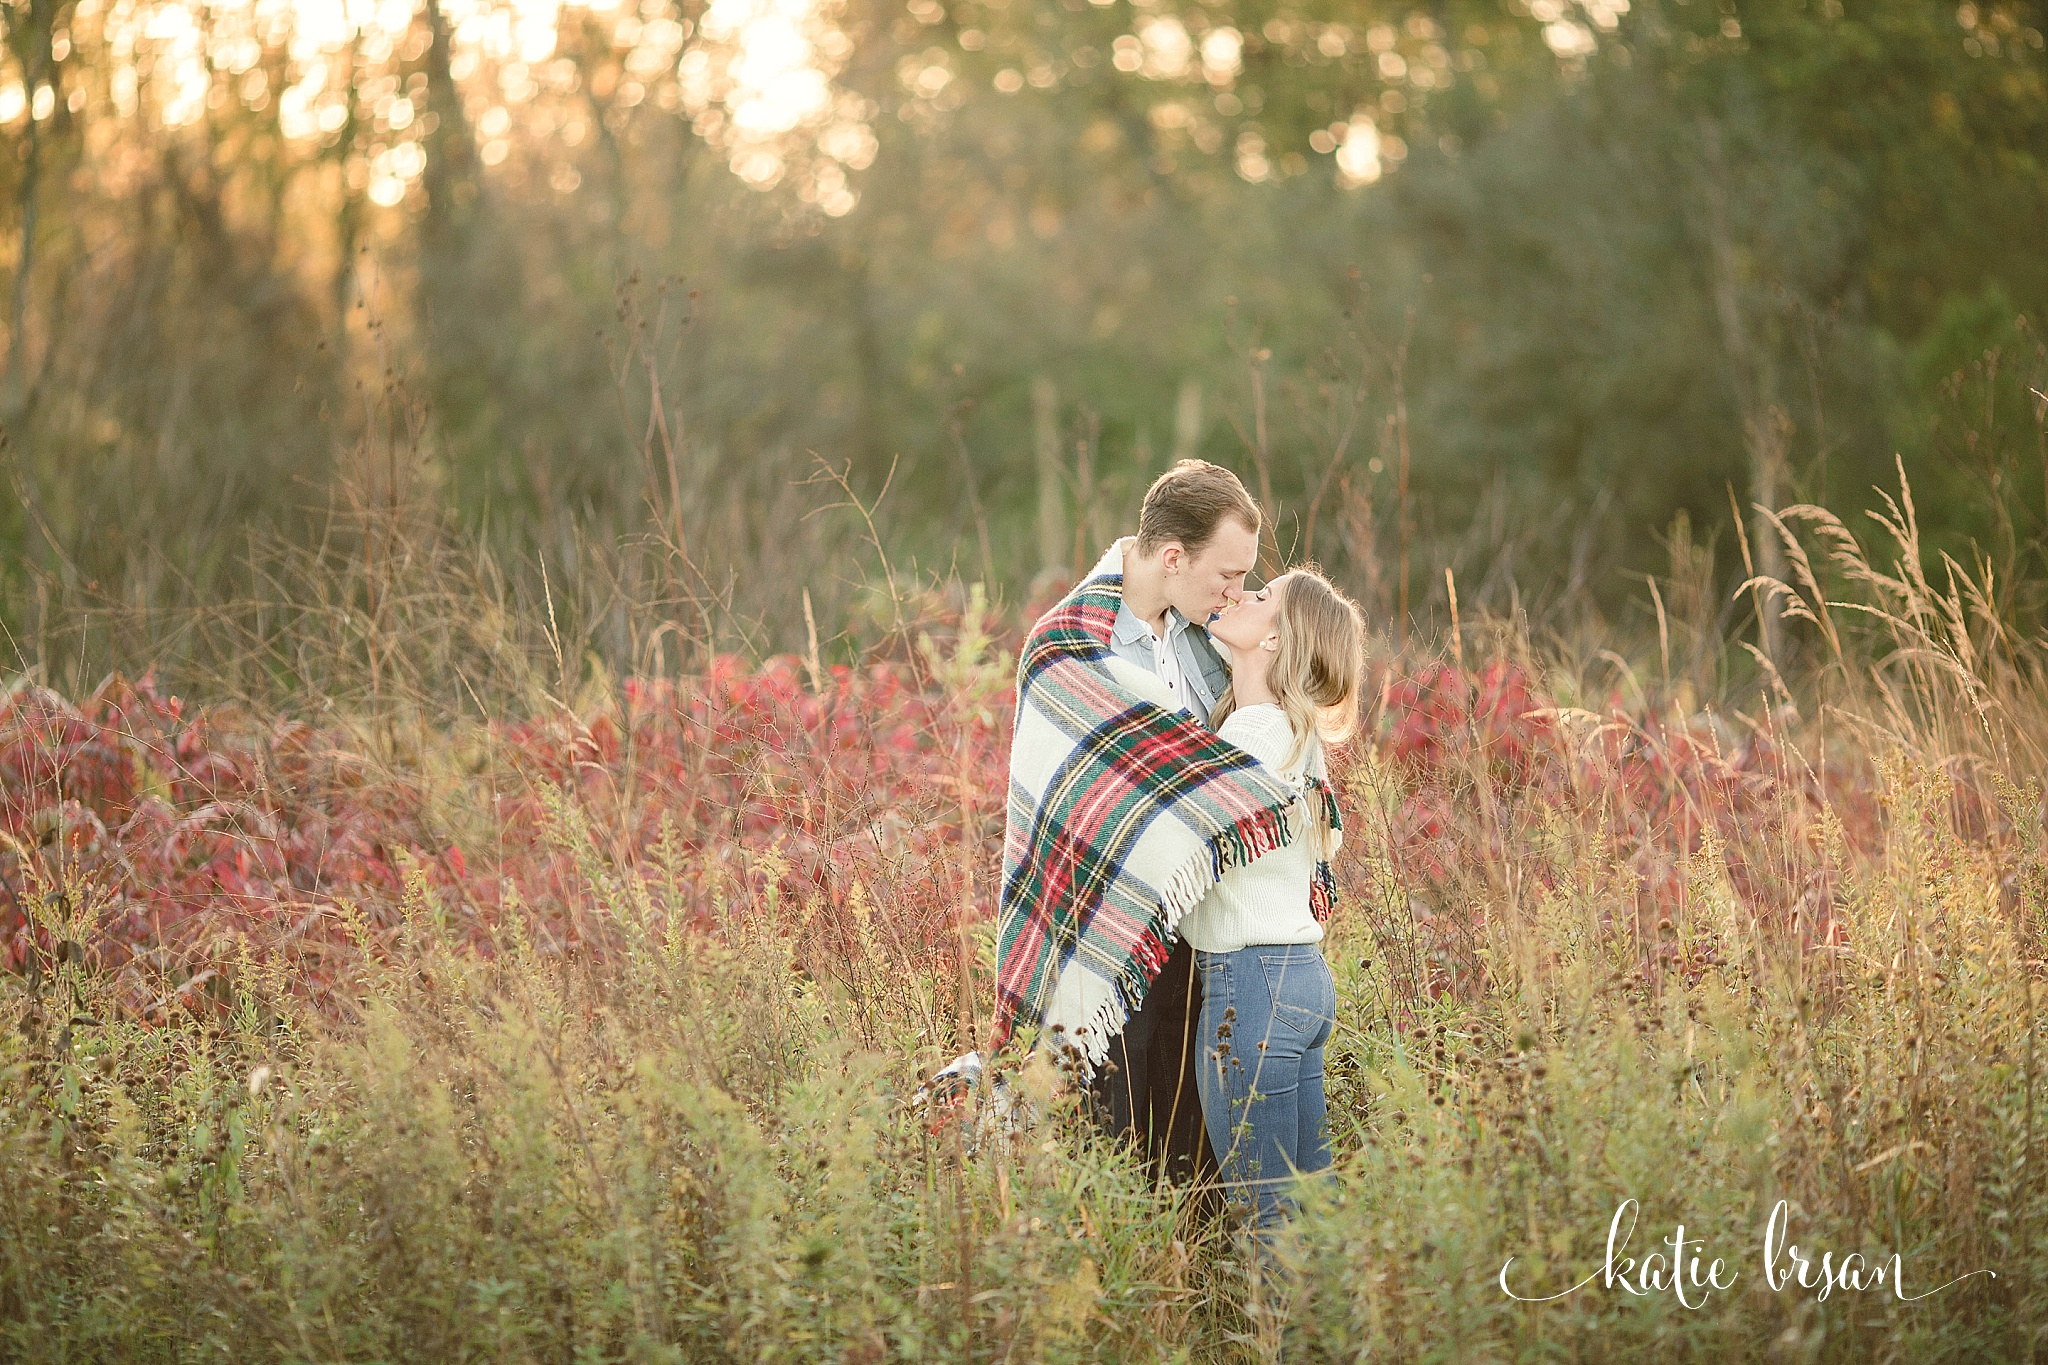 Mokena_EngagementSession_ChicagoWeddingPhotographer_1181.jpg